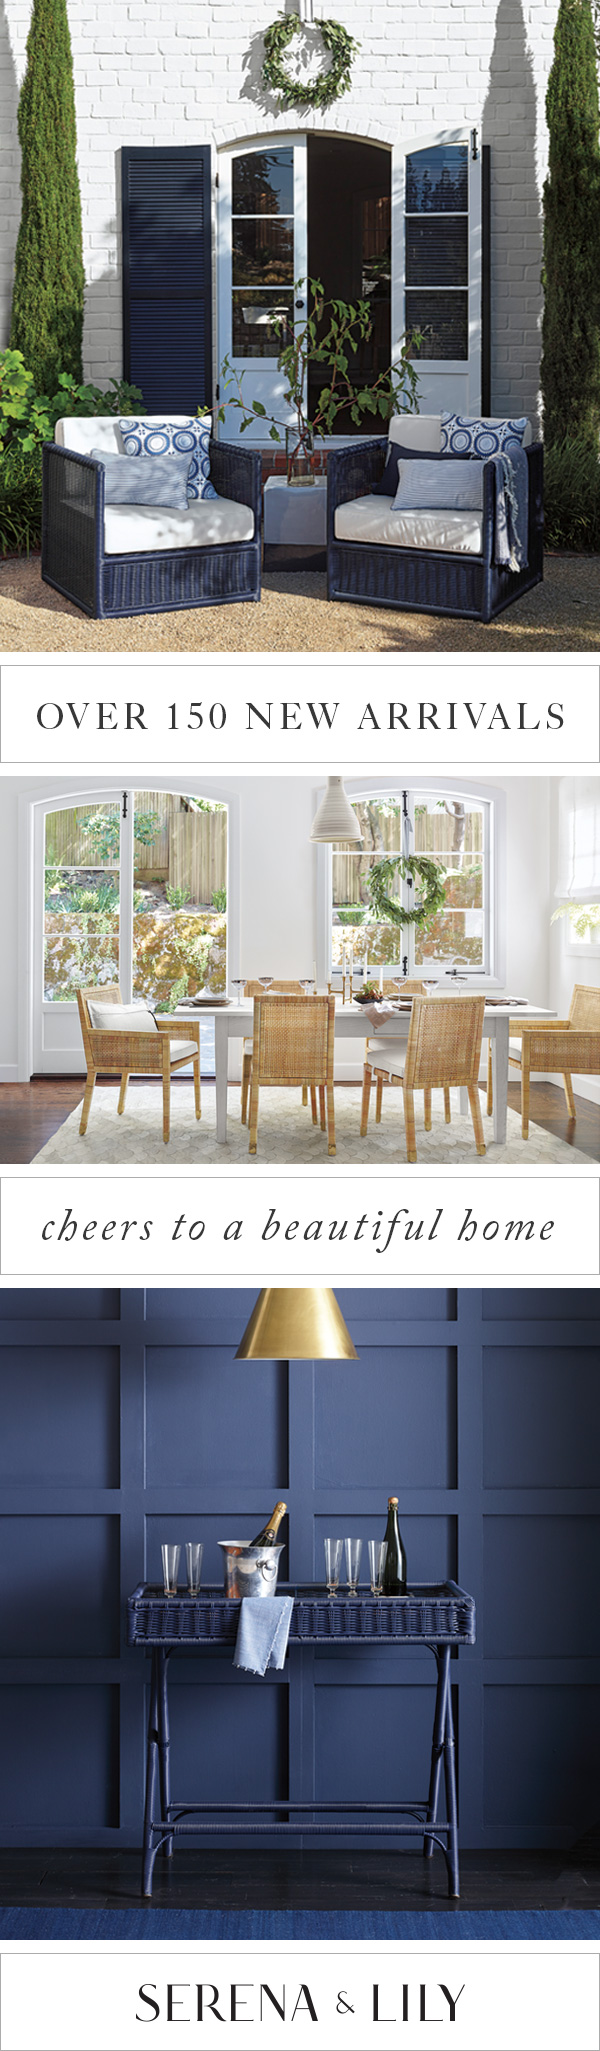 Home Makeover On Your Mind Find Decor Style With Over 150 New Arrivals At Serena And Lily